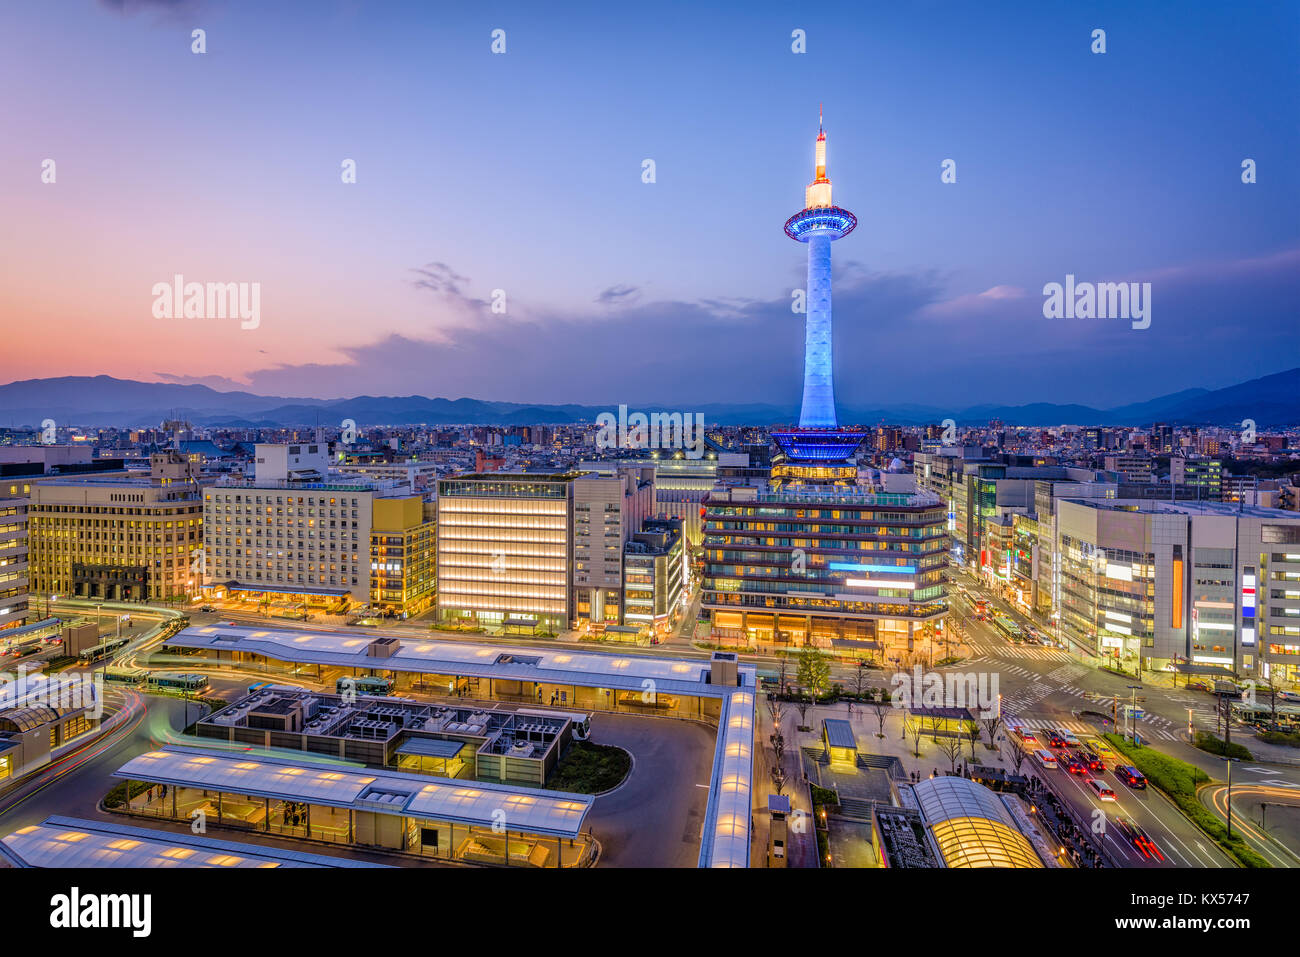 Kyoto, Japan Downtown Skyline und Turm. Stockbild